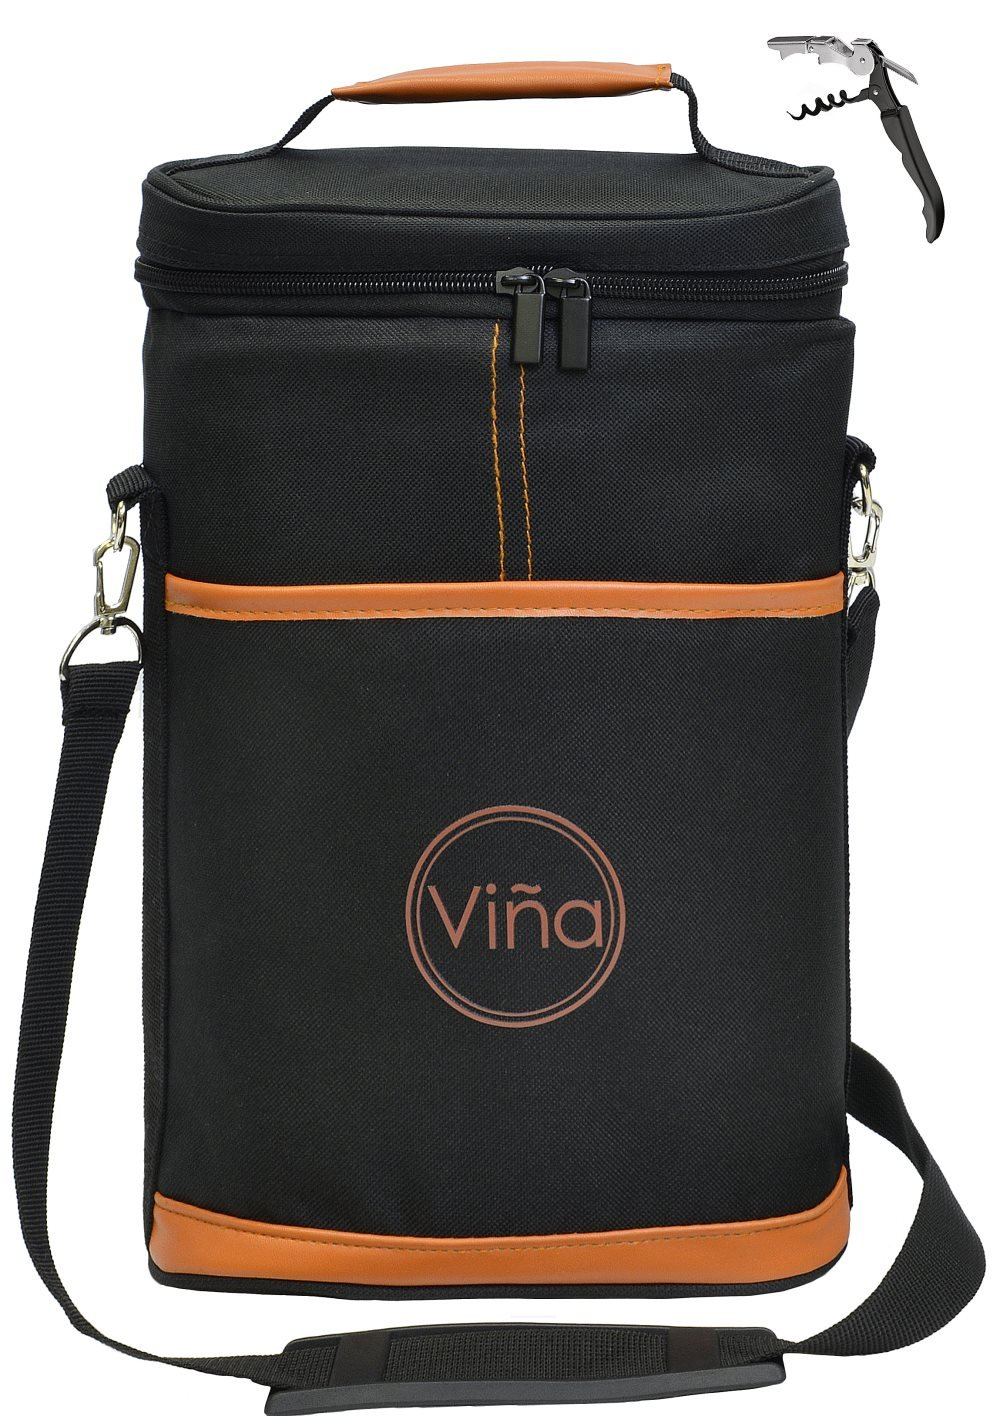 Vina® Wine Travel Carrier & Cooler Bag 2-bottle Wine Champagne Carrying Tote Picnic Cooler Insulated Travel Brown Case +Free Corkscrew by VINA